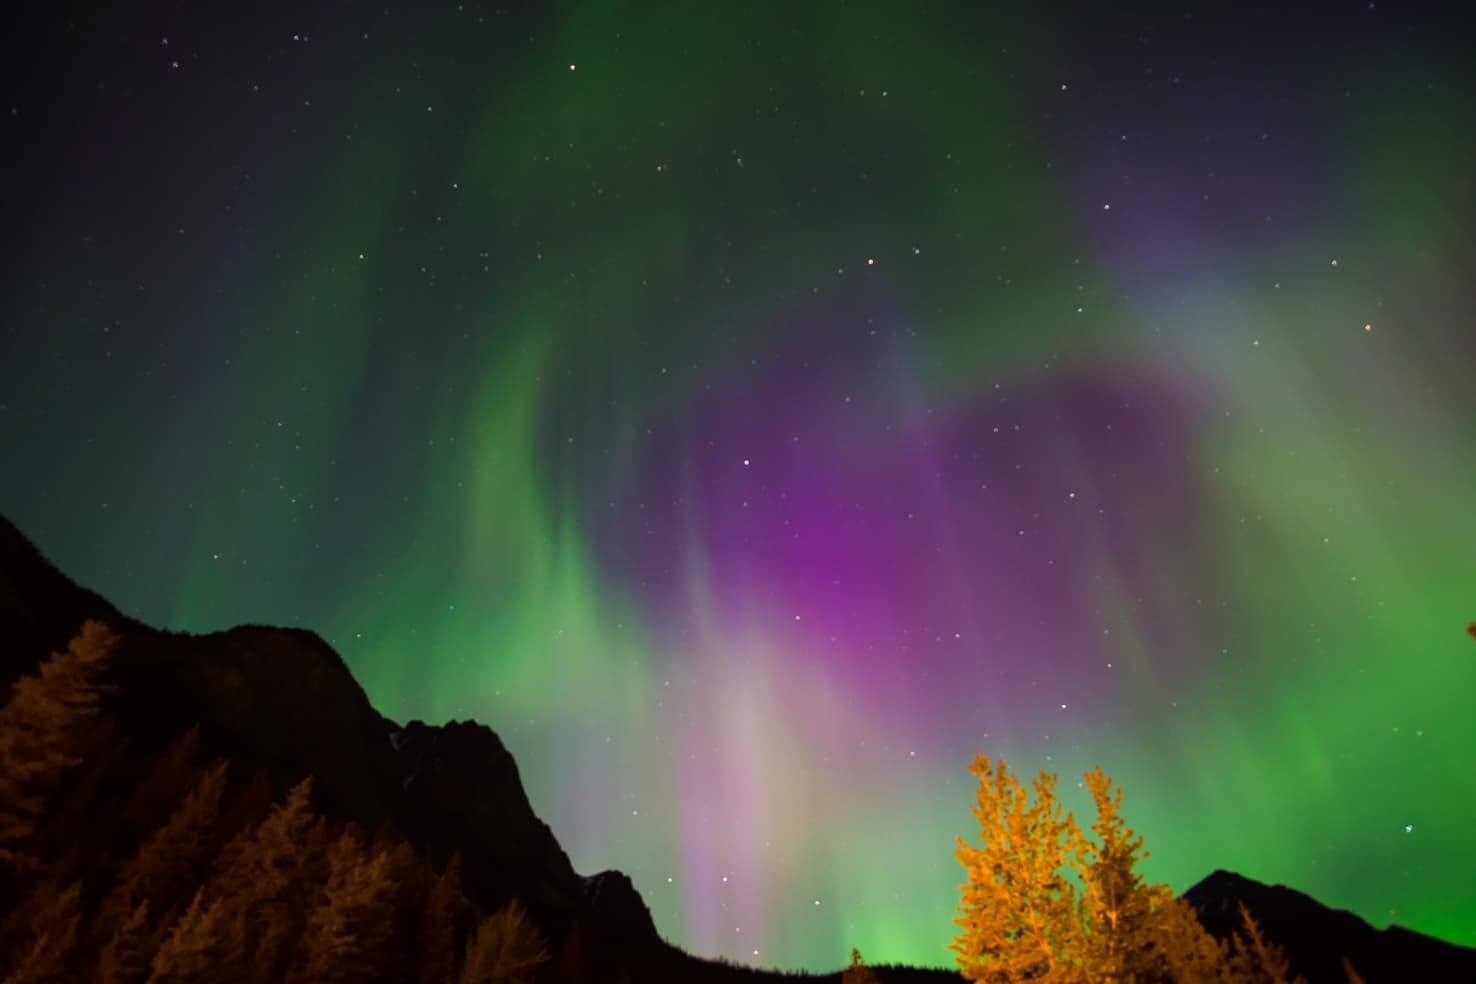 Adventure travel guide to Yoho National Park - Northern Lights